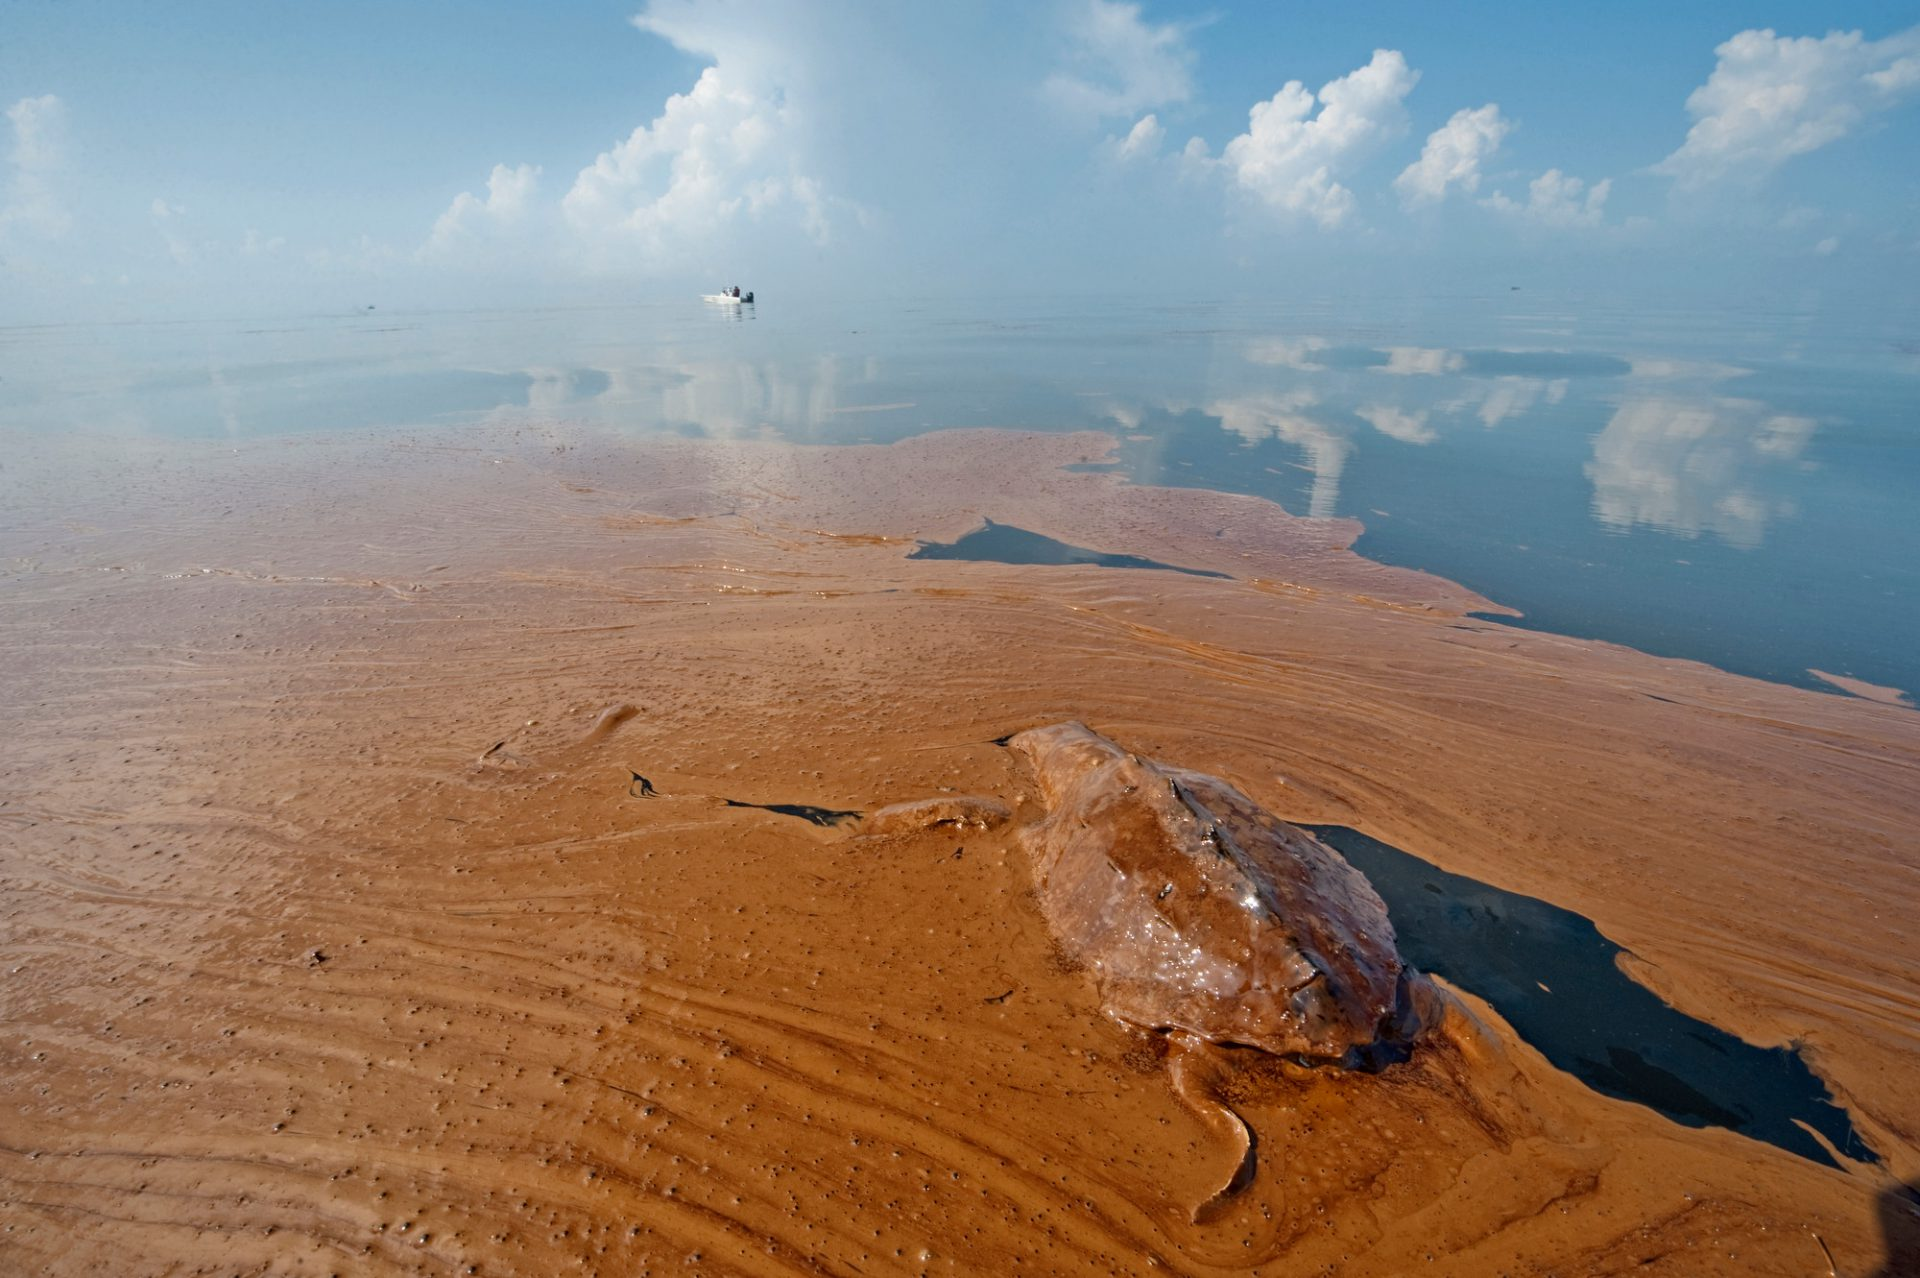 Photo: A dead sea turtle floating in an oil slick from the Deepwater Horizon spill, in Barataria Bay, Louisiana.